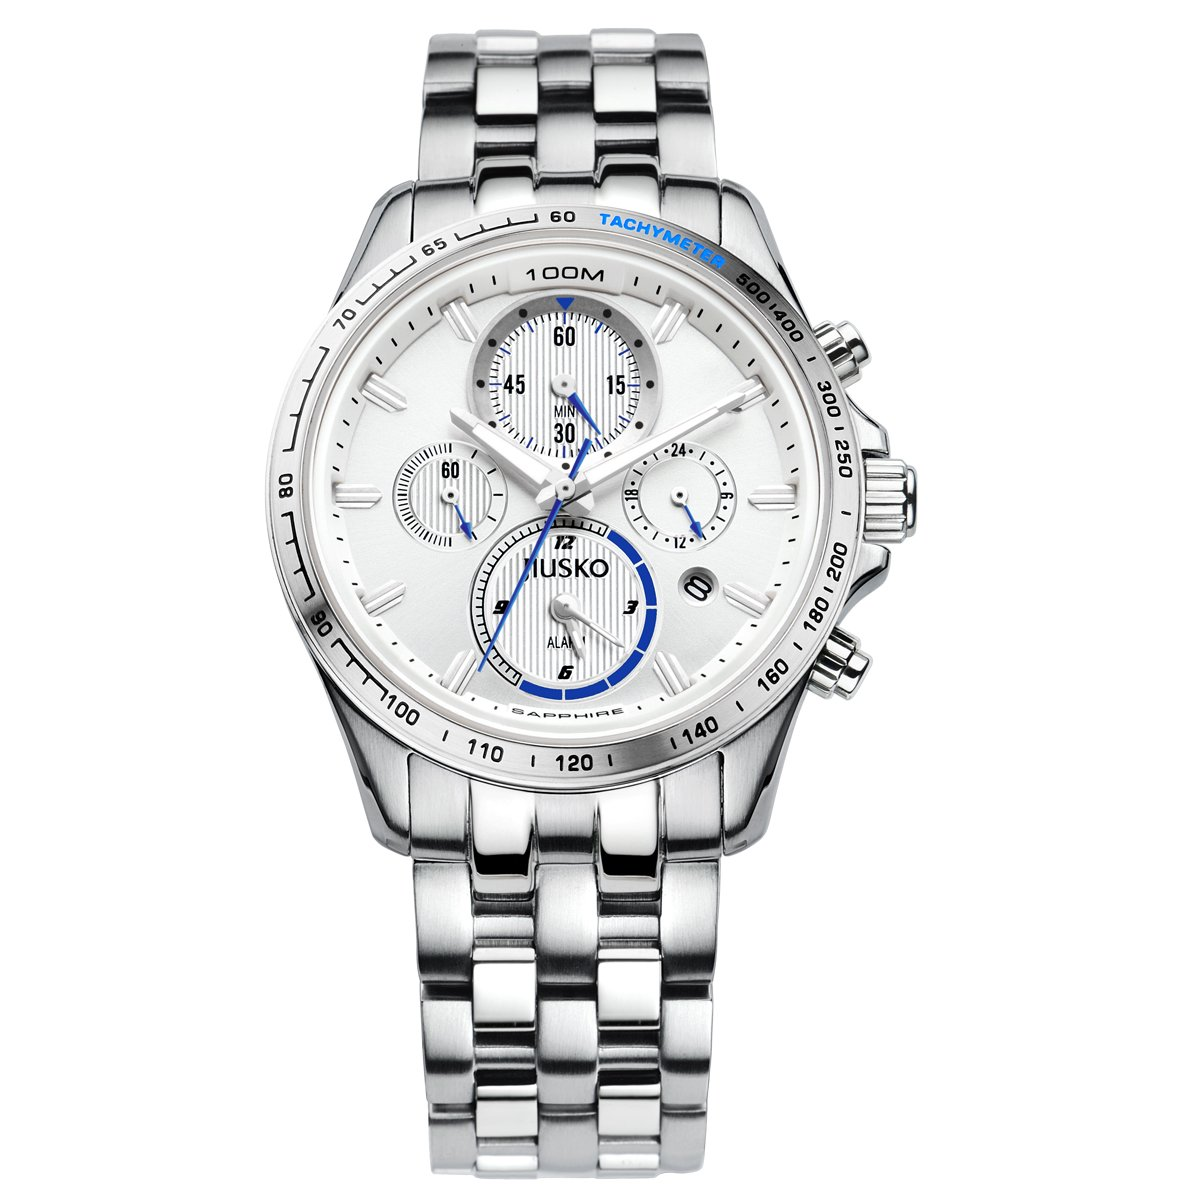 Jiusko Mens Multifunction Quartz Tachymeter Chronograph Silver Dress Watch - Sapphire - 24 Hr Dual Time - Alarm - Stainless Steel - Date - 108MS01 by JIUSKO